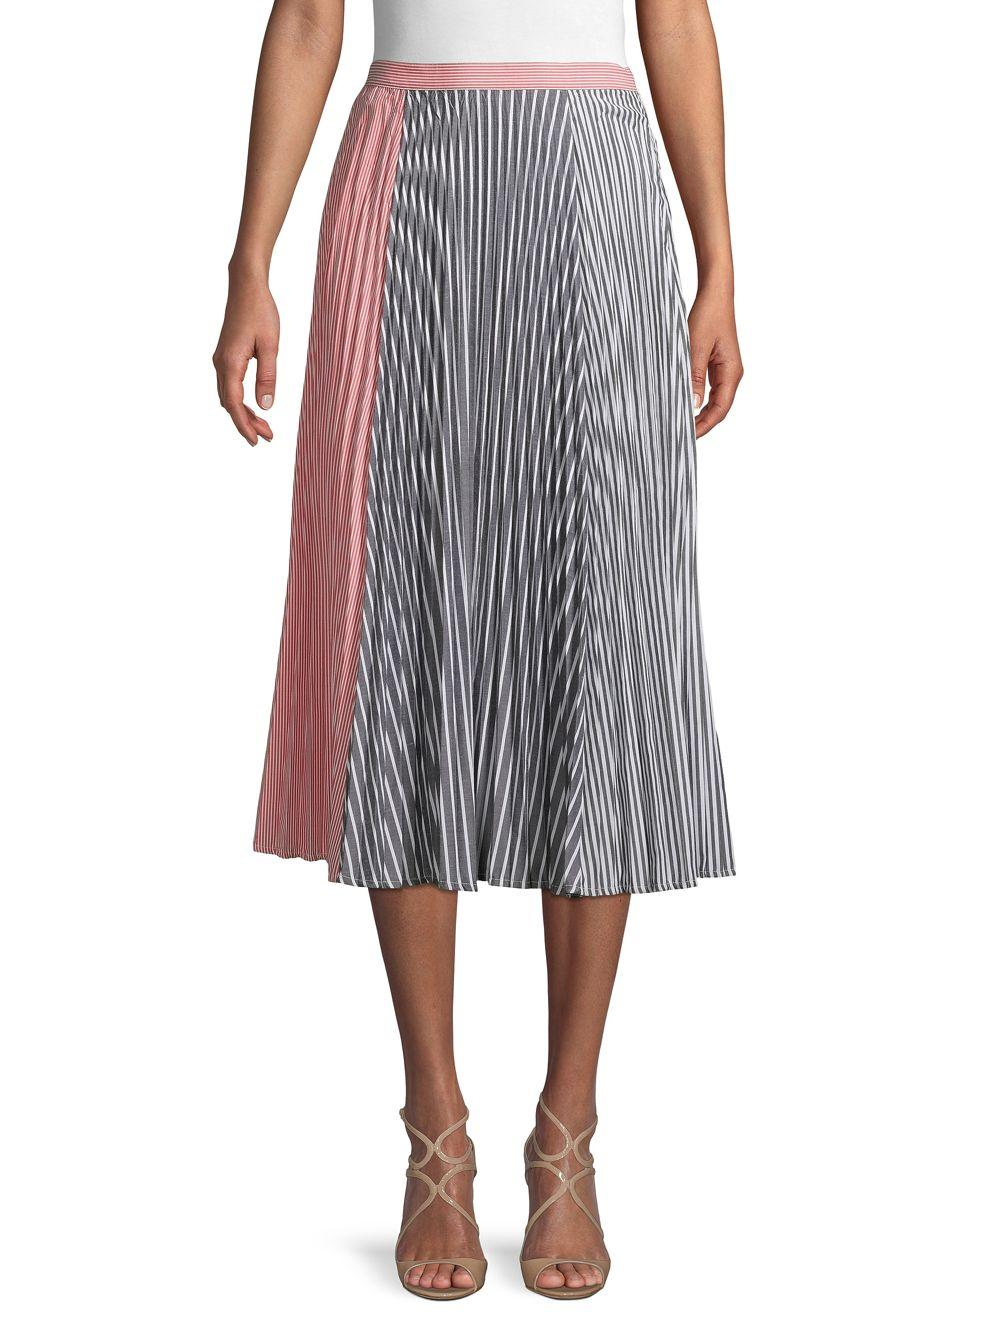 37bbd0c04e French Connection Accordion Pleat A-line Skirt in Gray - Lyst